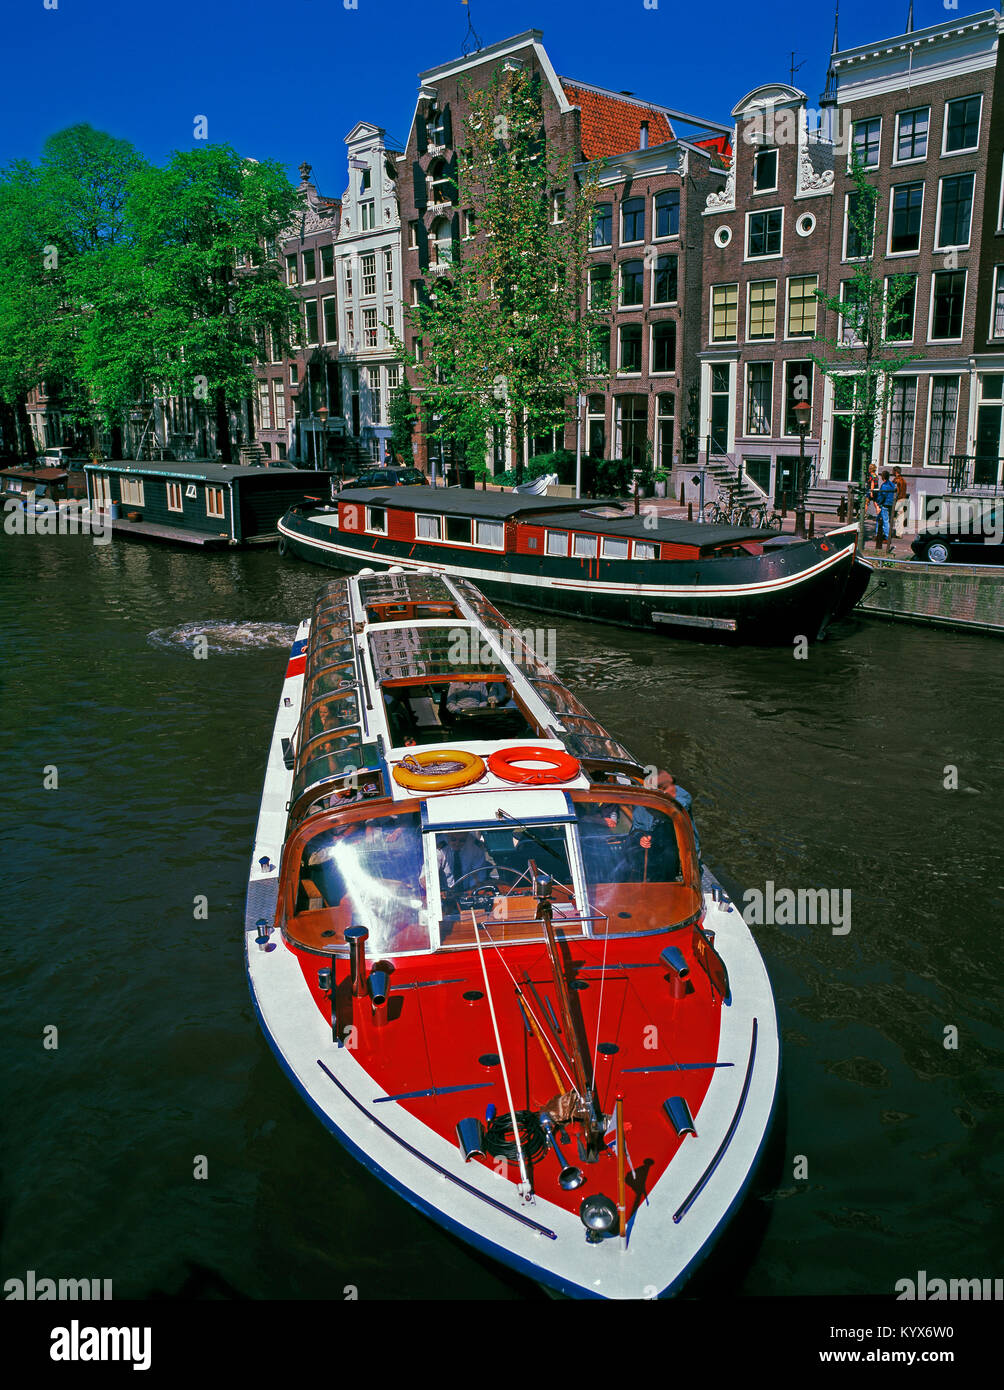 Pleasure/Tourist boat on Brouwersgracht Canal, Amsterdam, Noord Holland, Netherlands - Stock Image